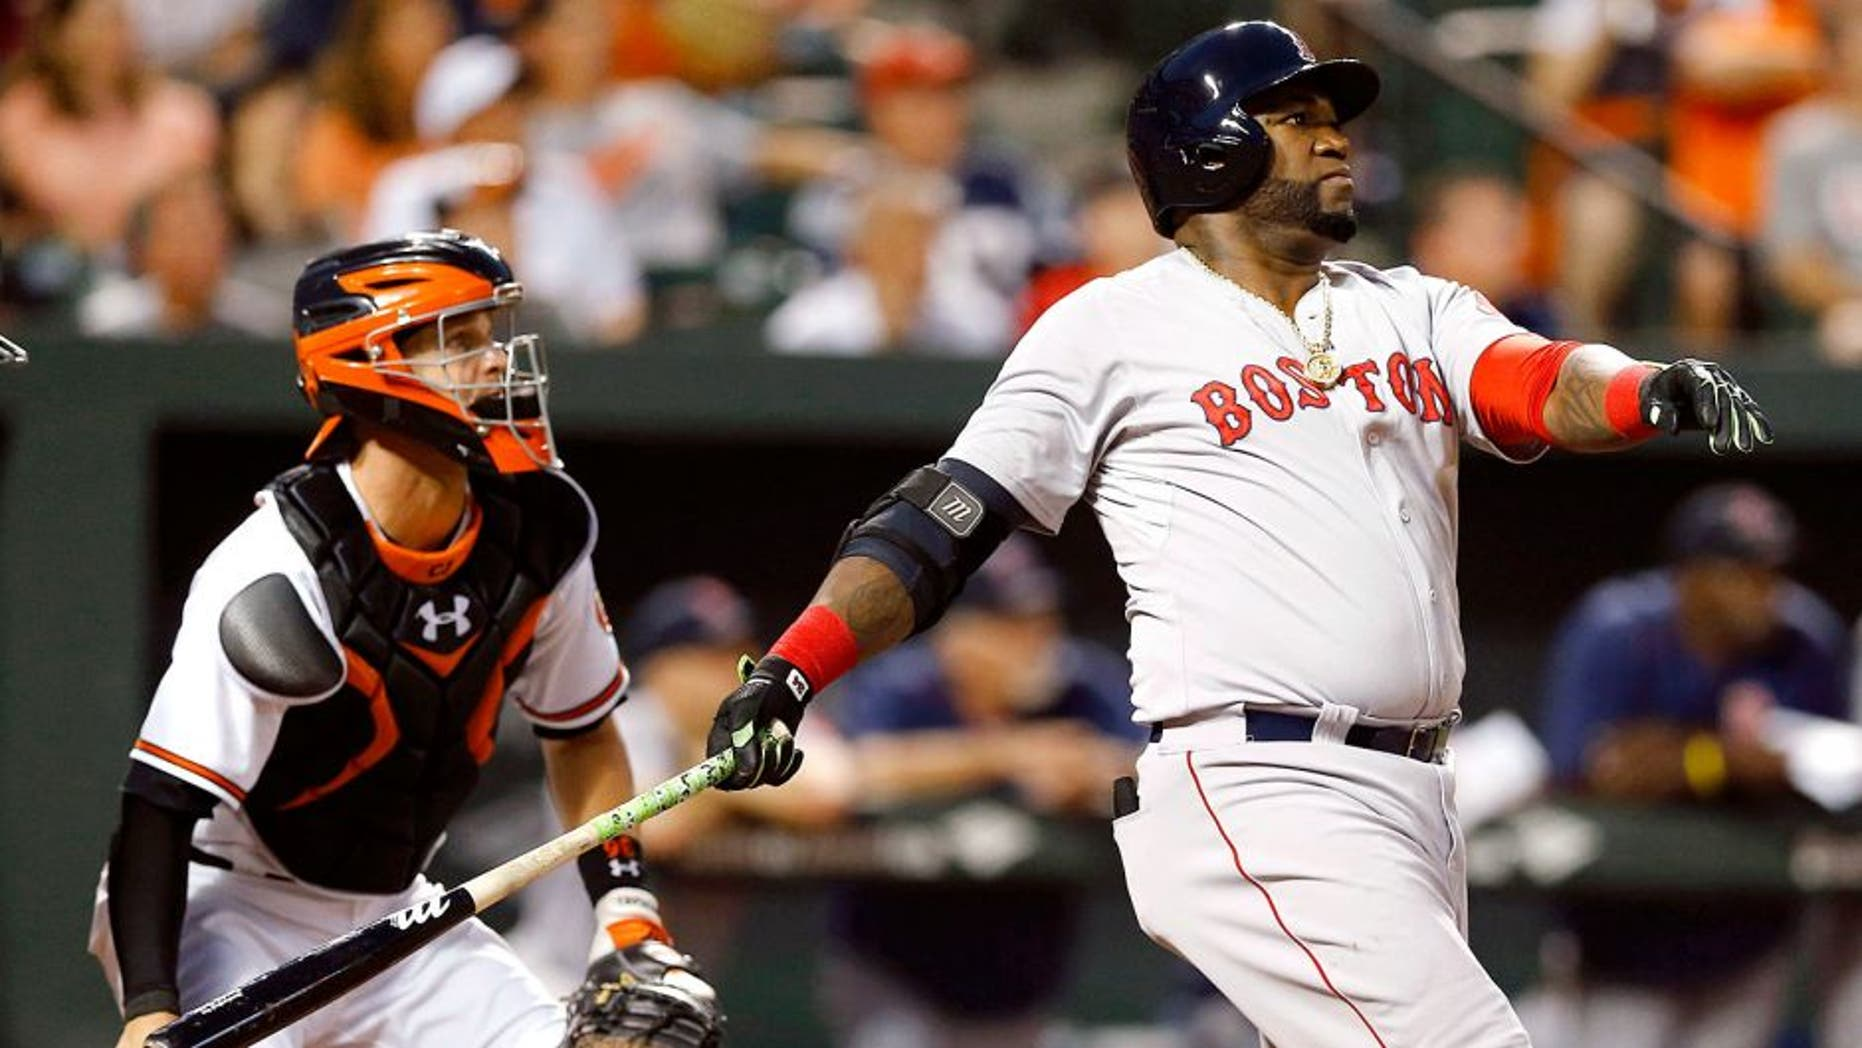 RETRANSMISSION TO CORRECT NAME OF CATCHER TO CALEB JOSEPH FROM MATT WIETERS - Boston Red Sox's David Ortiz, right, watches his solo home run in front of Baltimore Orioles catcher Caleb Joseph in the second inning of a baseball game, Wednesday, Sept. 16, 2015, in Baltimore. (AP Photo/Patrick Semansky)